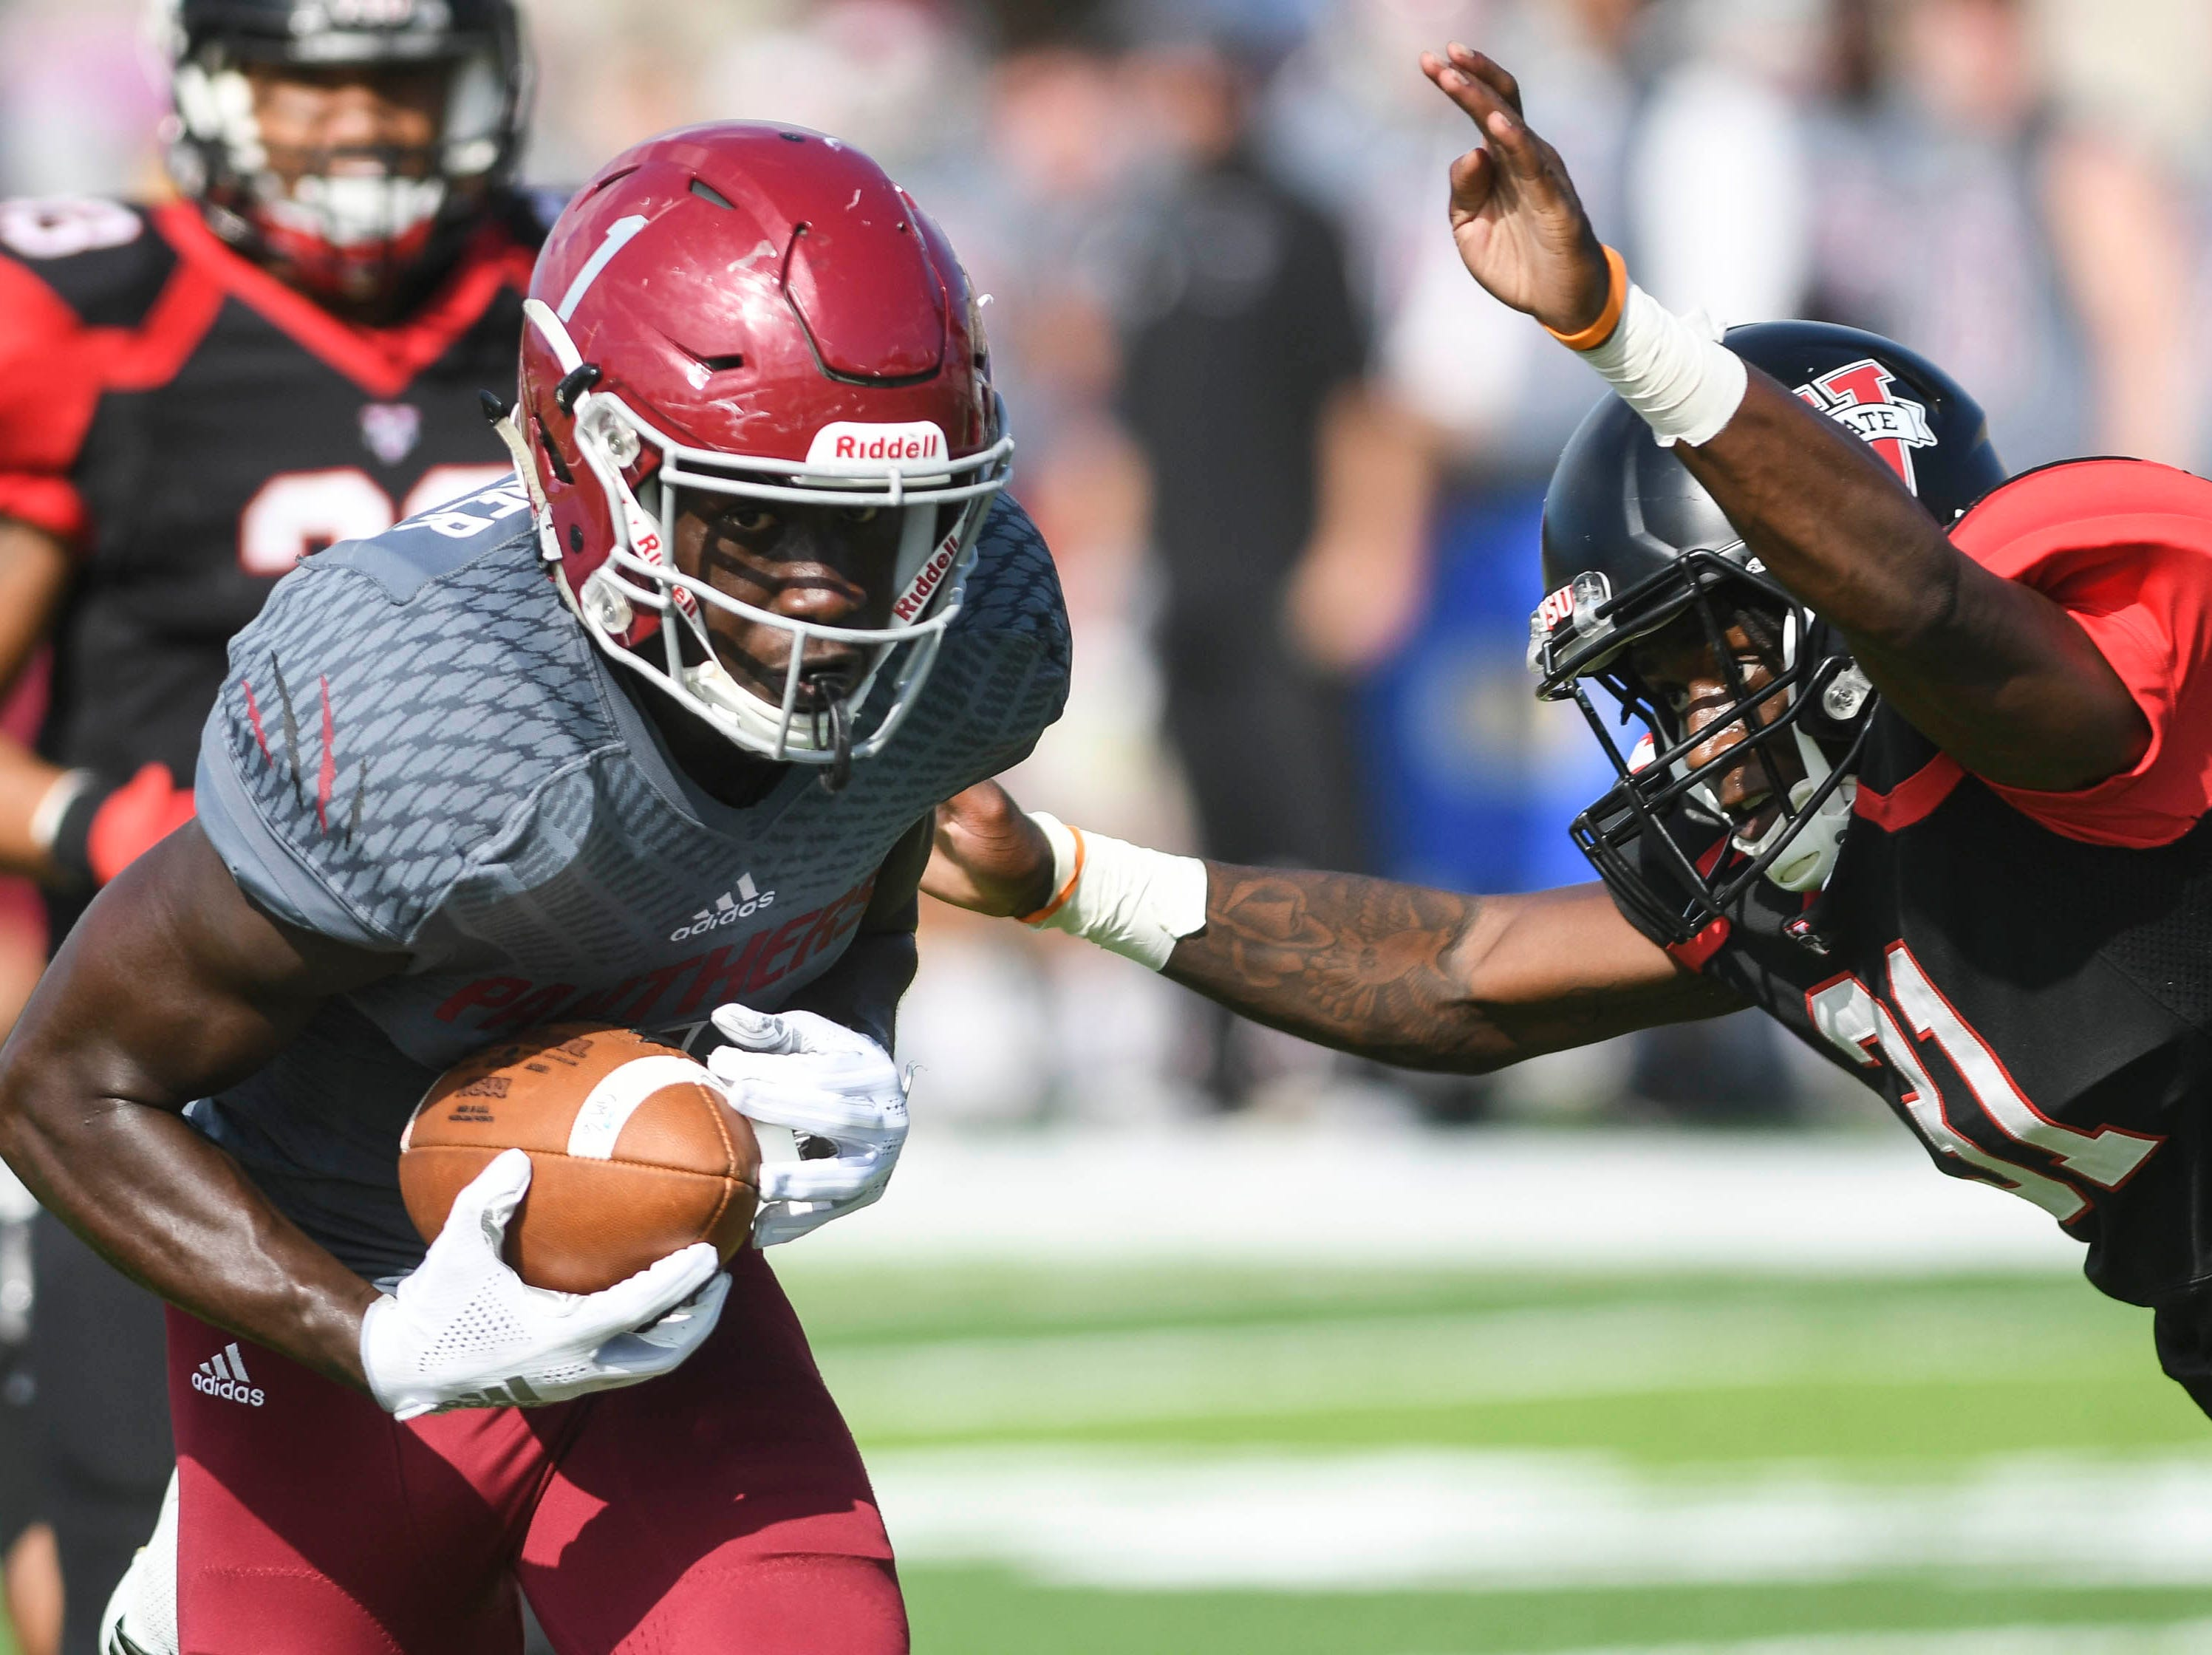 Aaron Dawson of Valdosta State tackles Romell Guerrier of Florida Tech but not before he scores a touchdown on as pass from Trent Chmelik during Saturday's game.